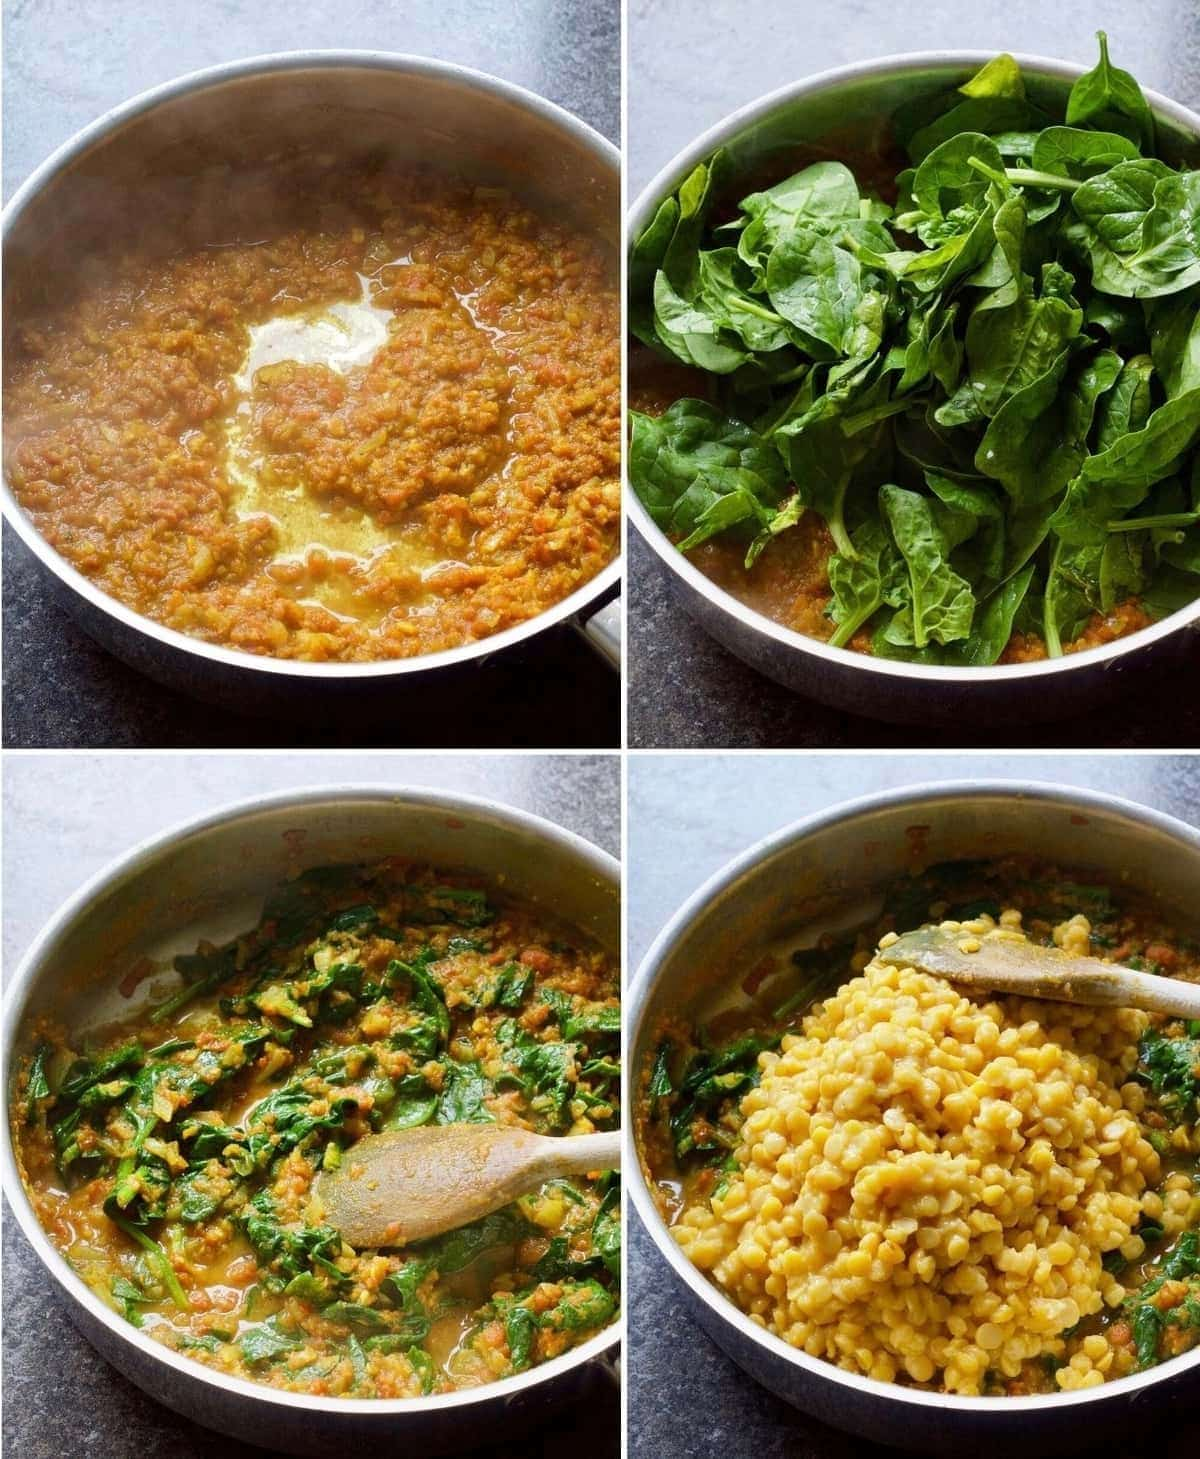 Adding spinach to wilt followed by cooked chana dhal.